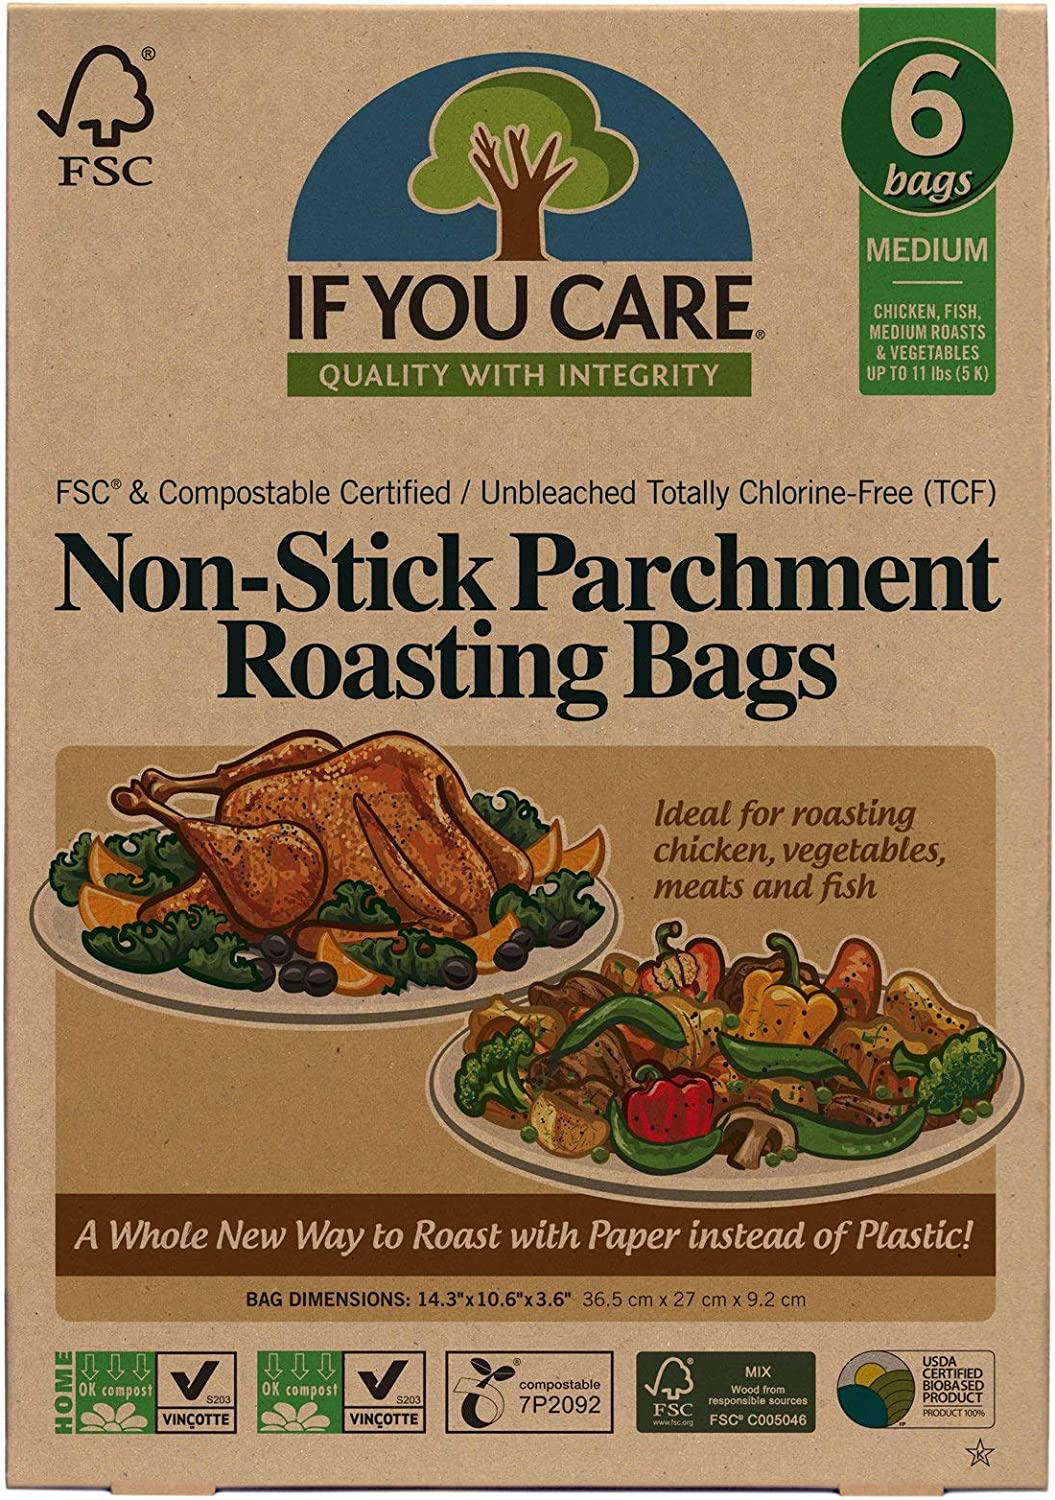 IF YOU CARE Non-Stick Parchment Roasting Bags, Medium 81NHuacBPLL